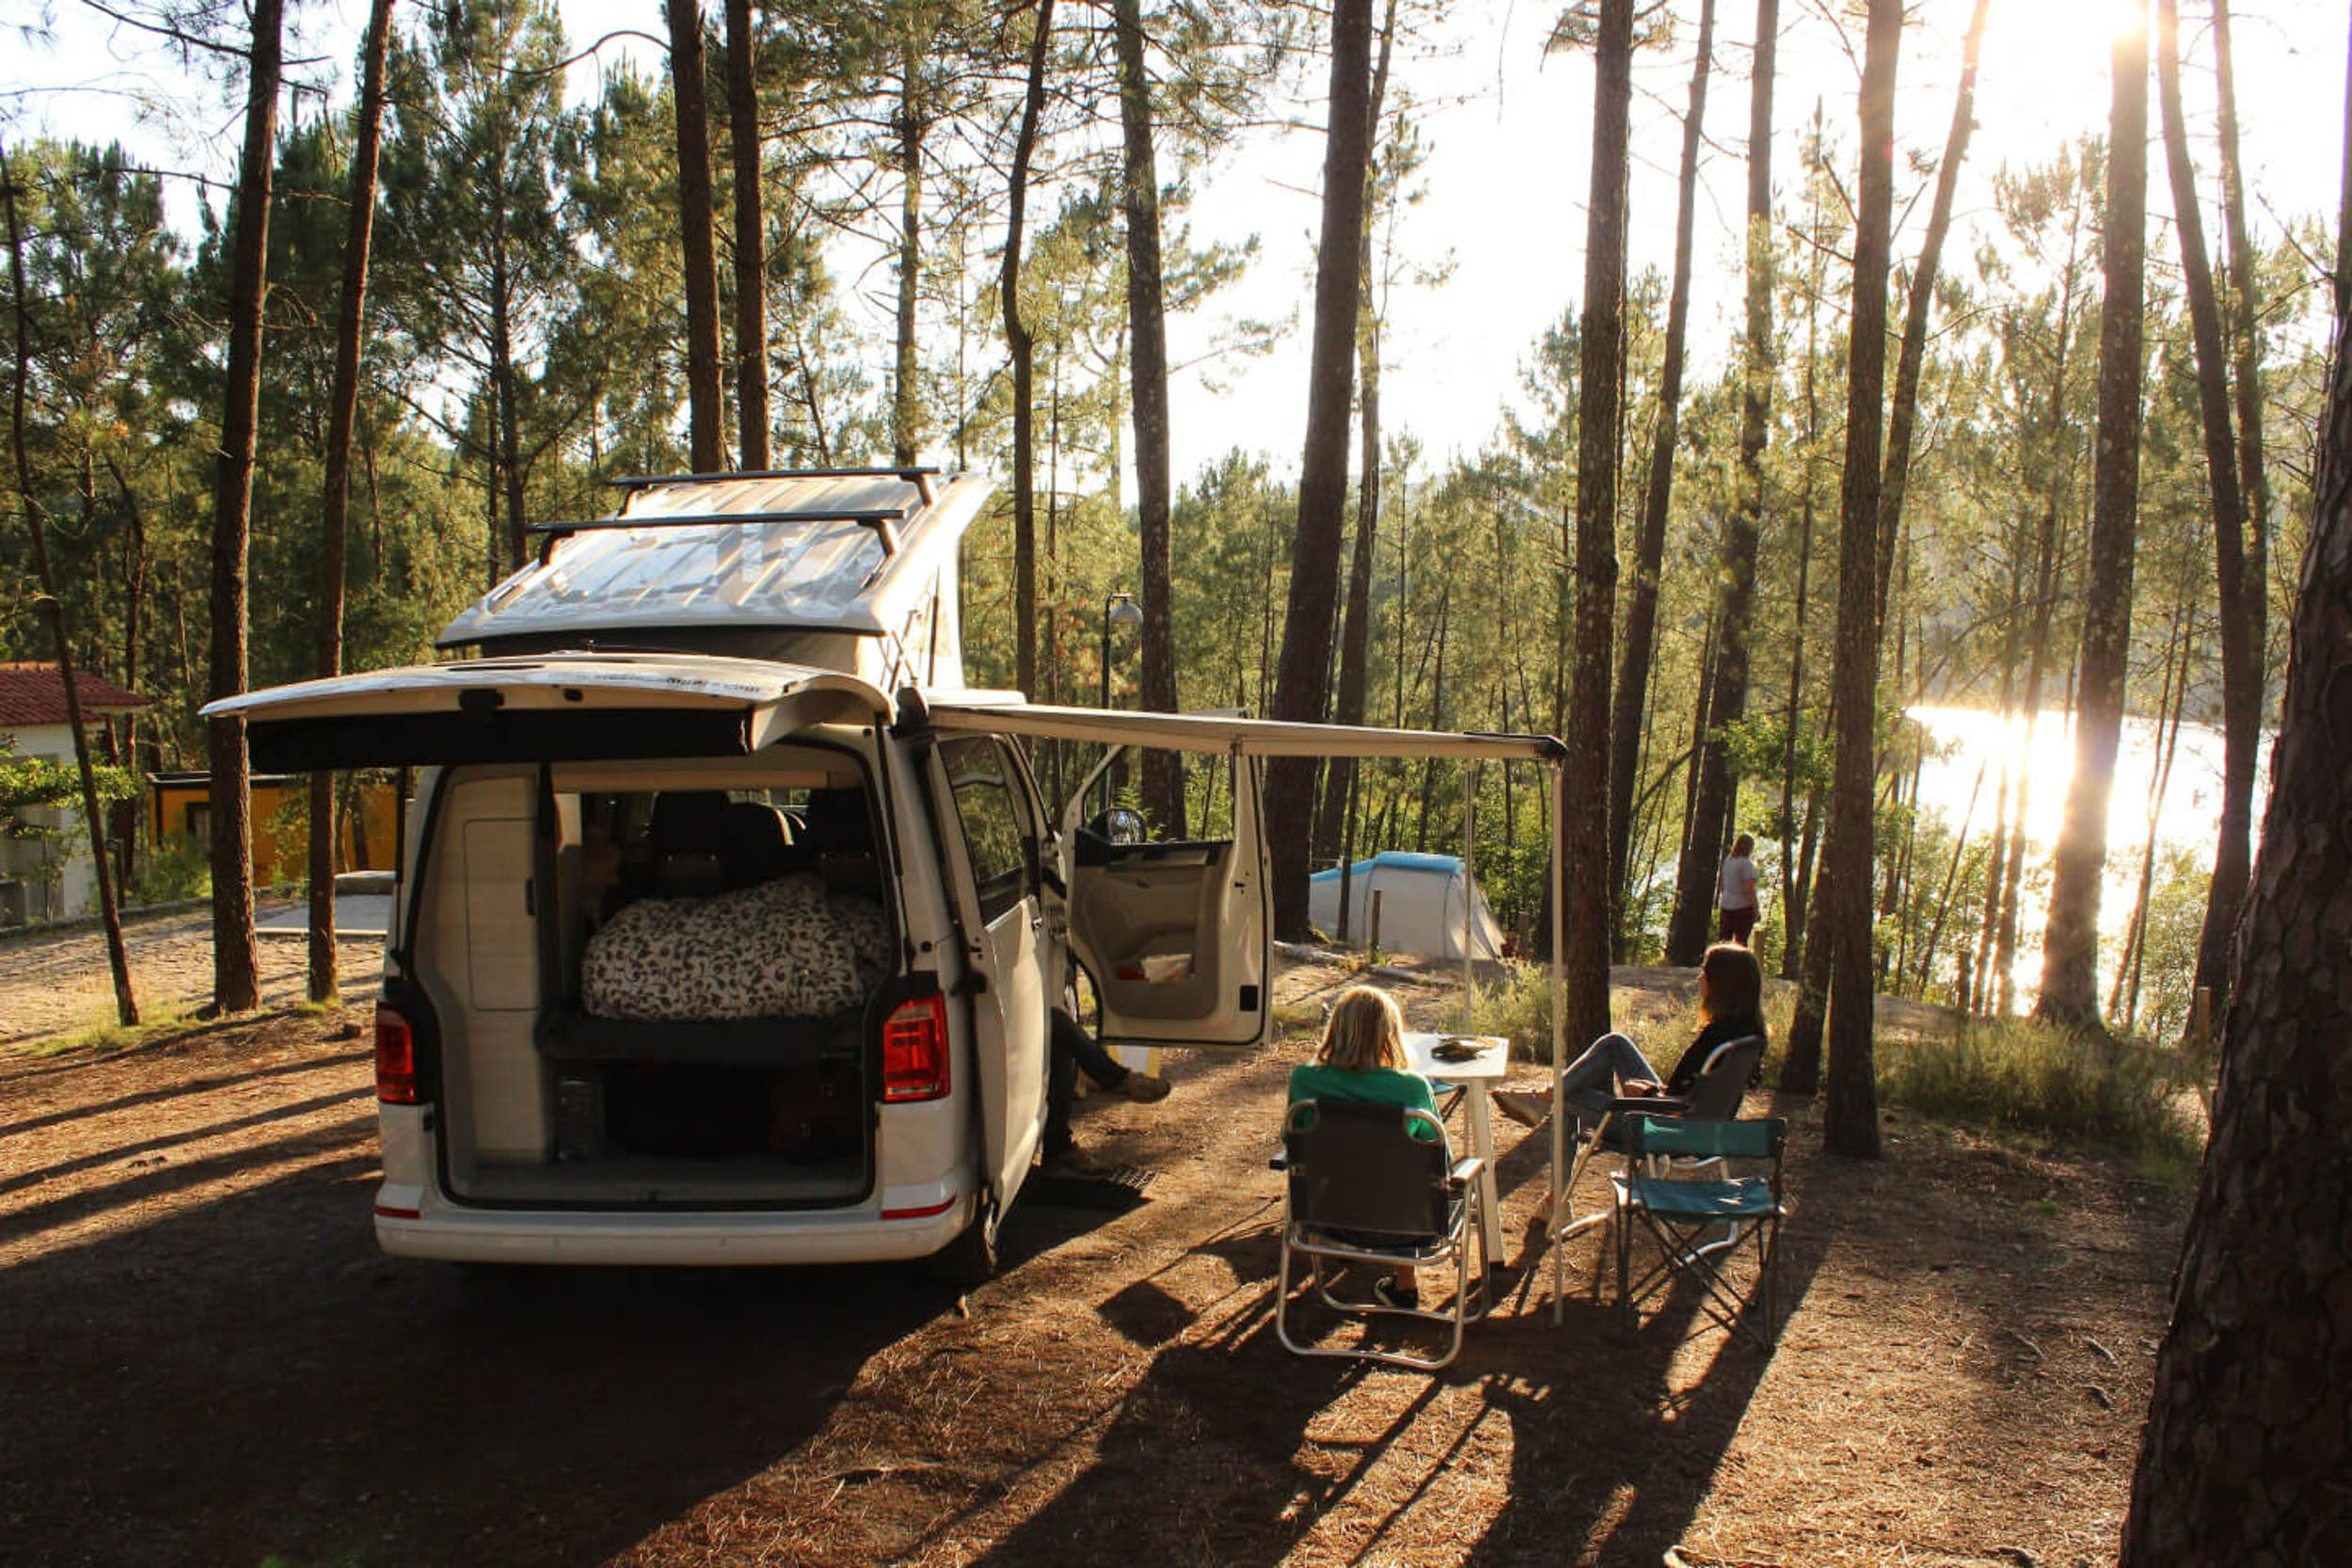 North Portugal camping in a dense forest in a natural park.